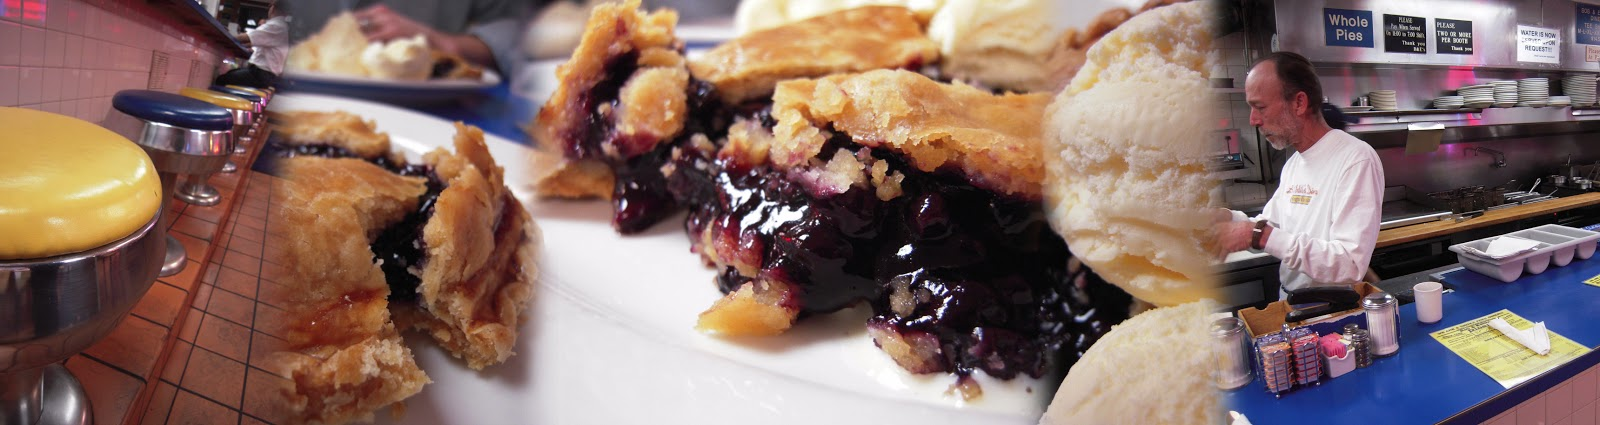 Blueberry Pie at Bob & Edith's Diner